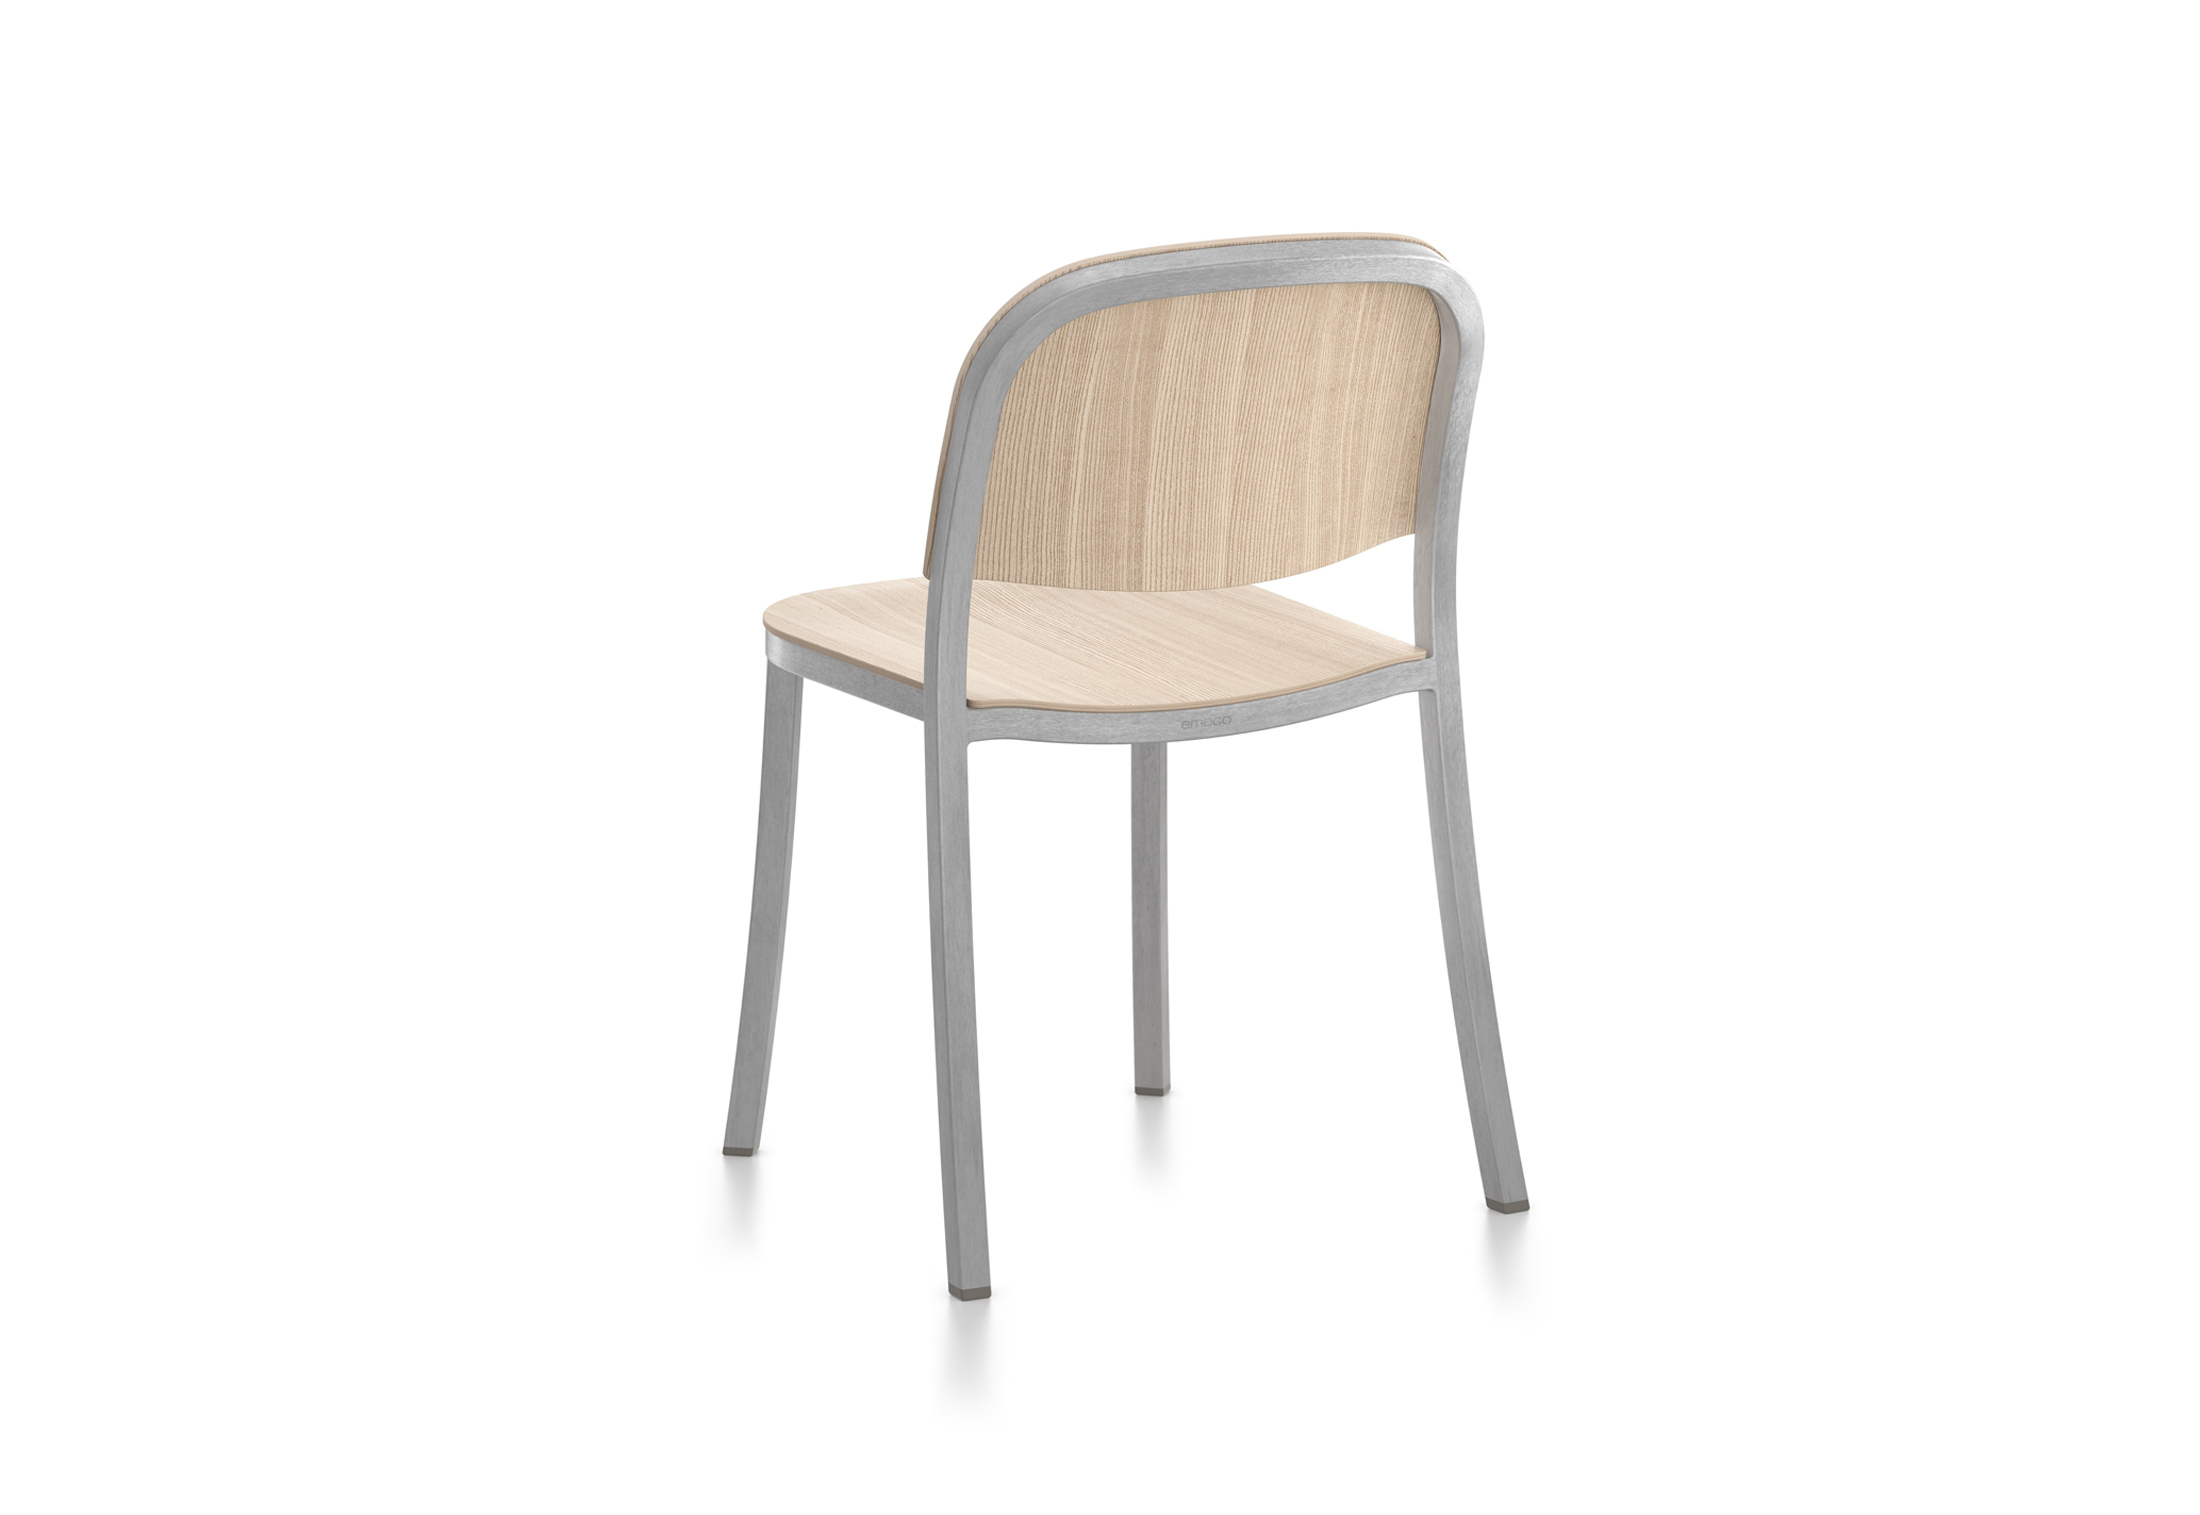 1 Inch chair by Emeco  STYLEPARK